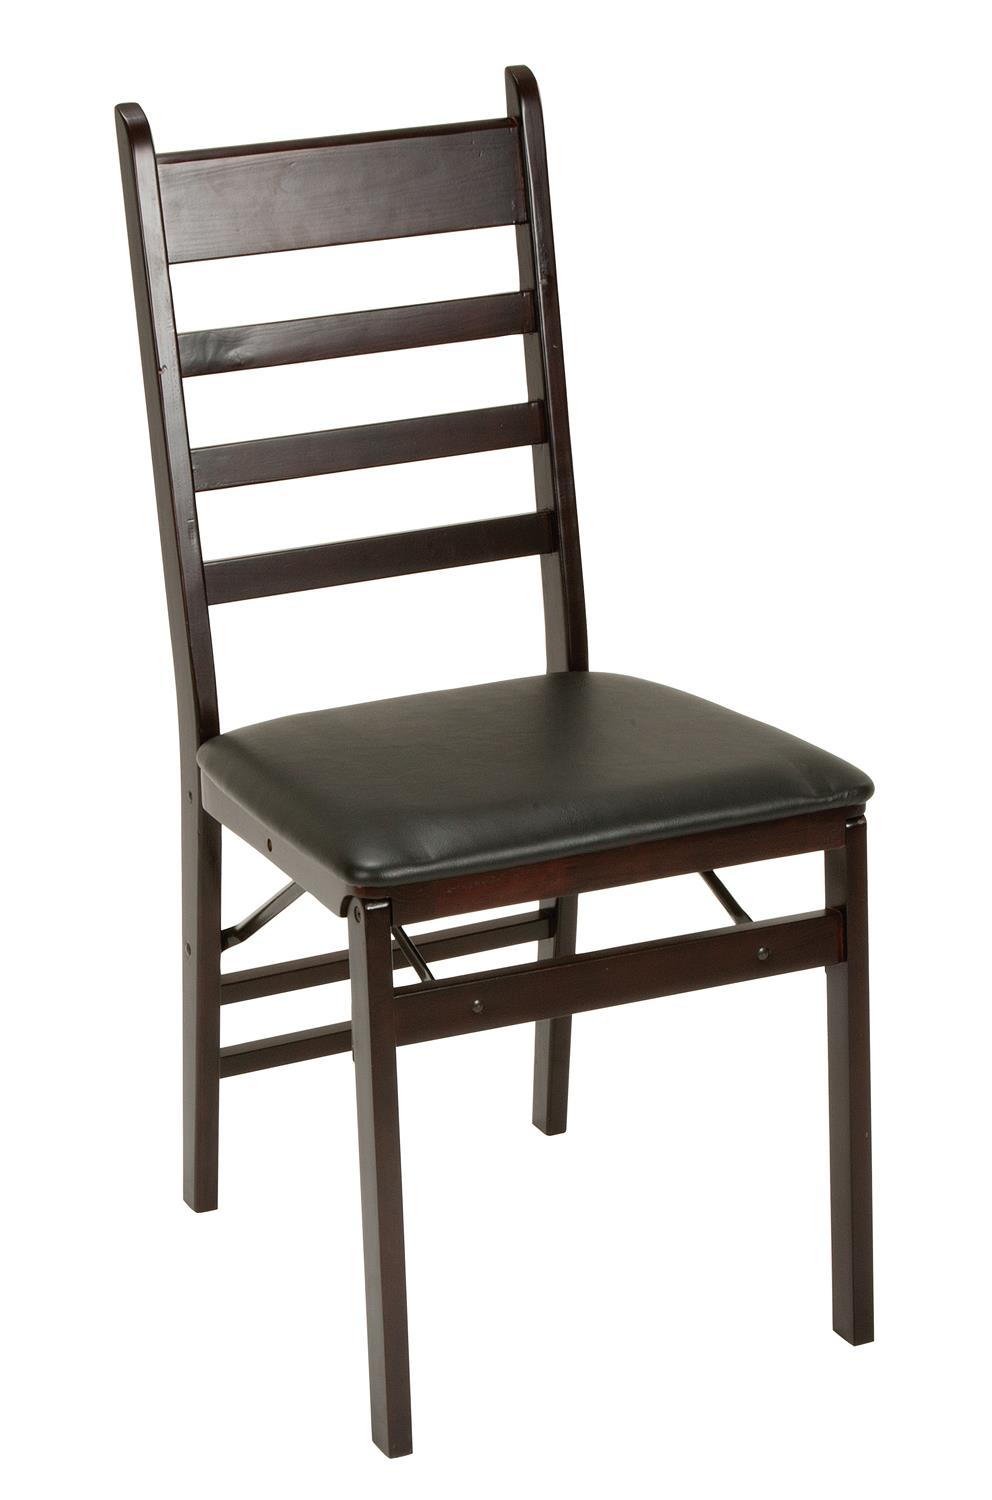 Cosco Ladder Back Wood Folding Chair Espresso/Black Set of 2 - Walmart.com  sc 1 st  Walmart & Cosco Ladder Back Wood Folding Chair Espresso/Black Set of 2 ...